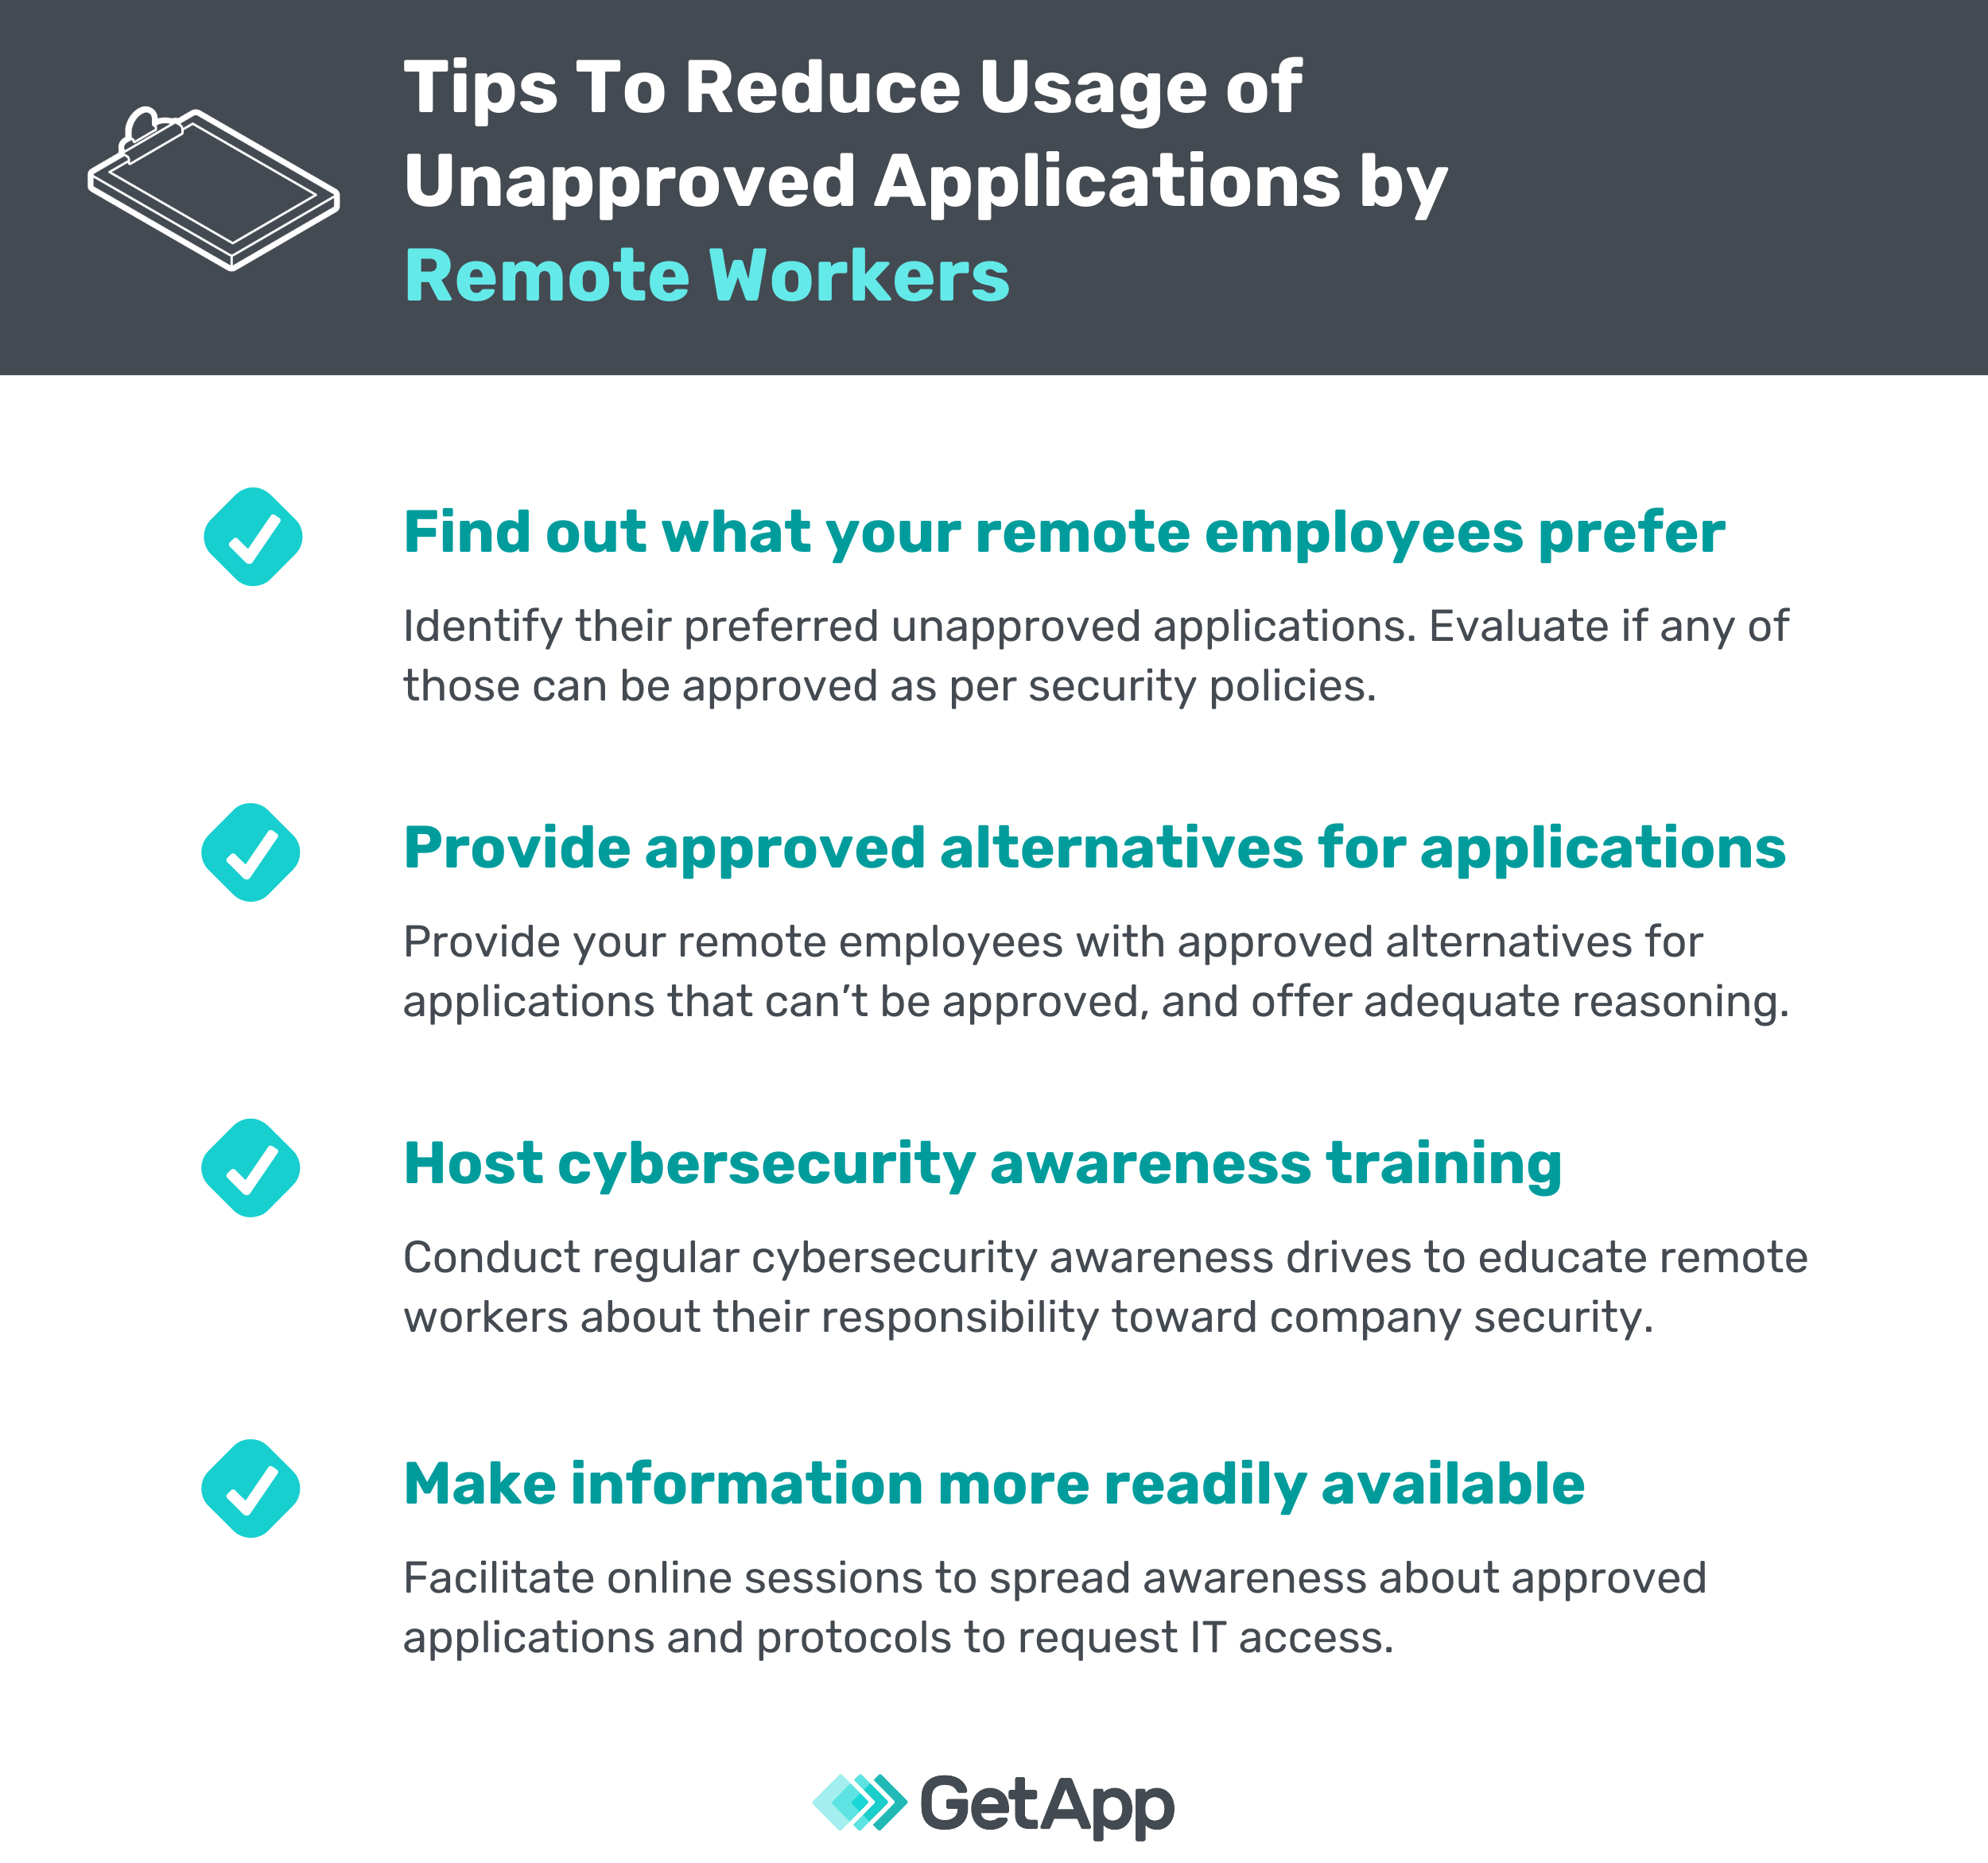 Tips to reduce unapproved applications by remote workers